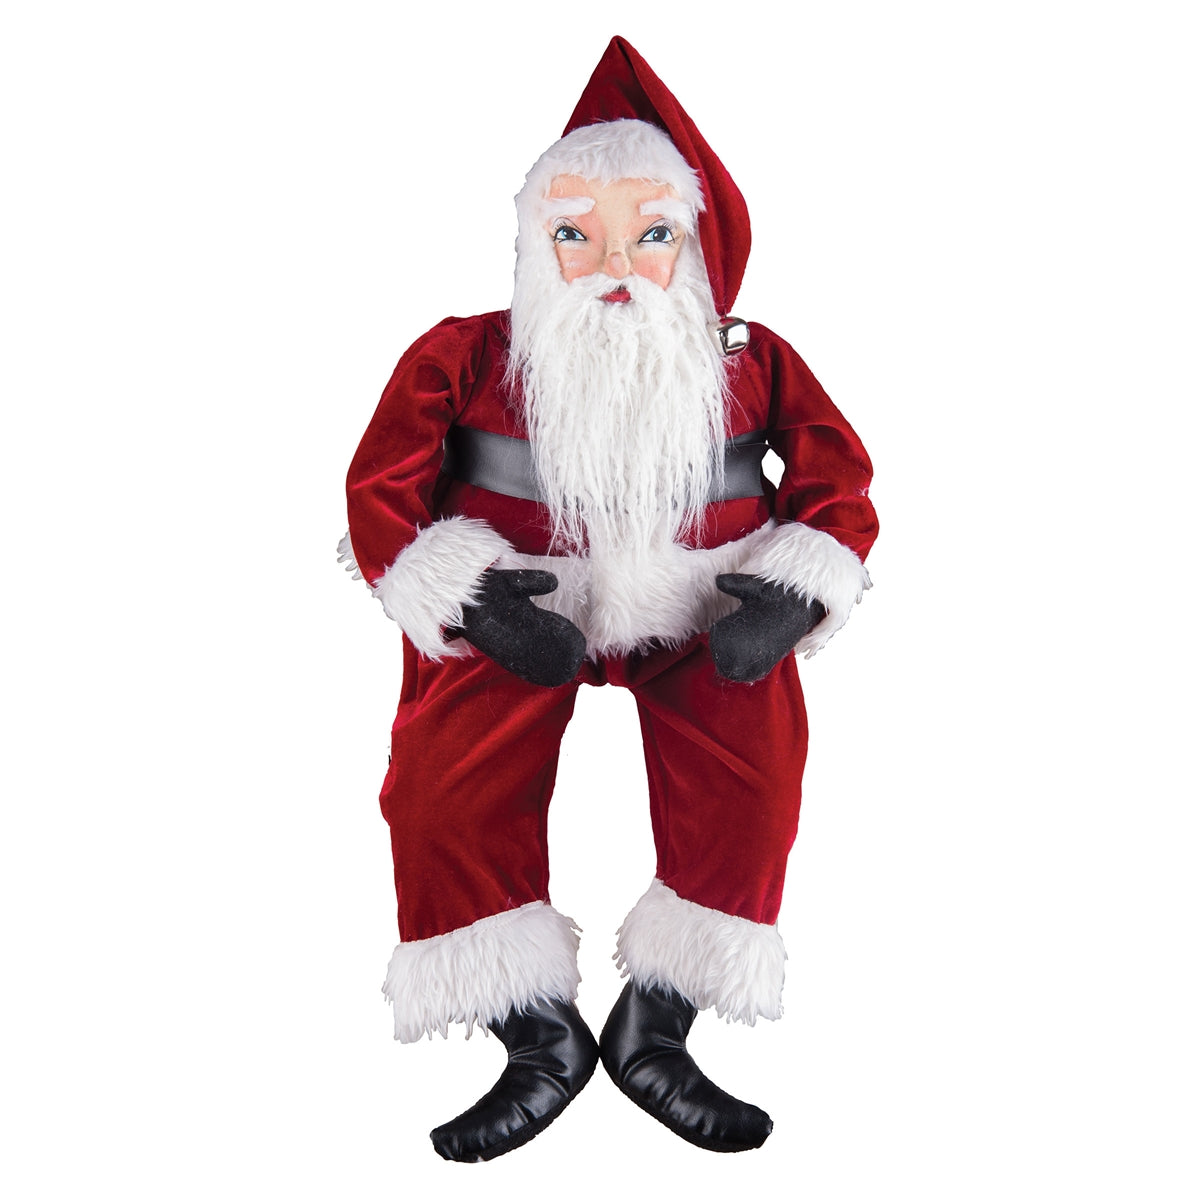 Whittaker Santa Doll - Joe Spencer Christmas